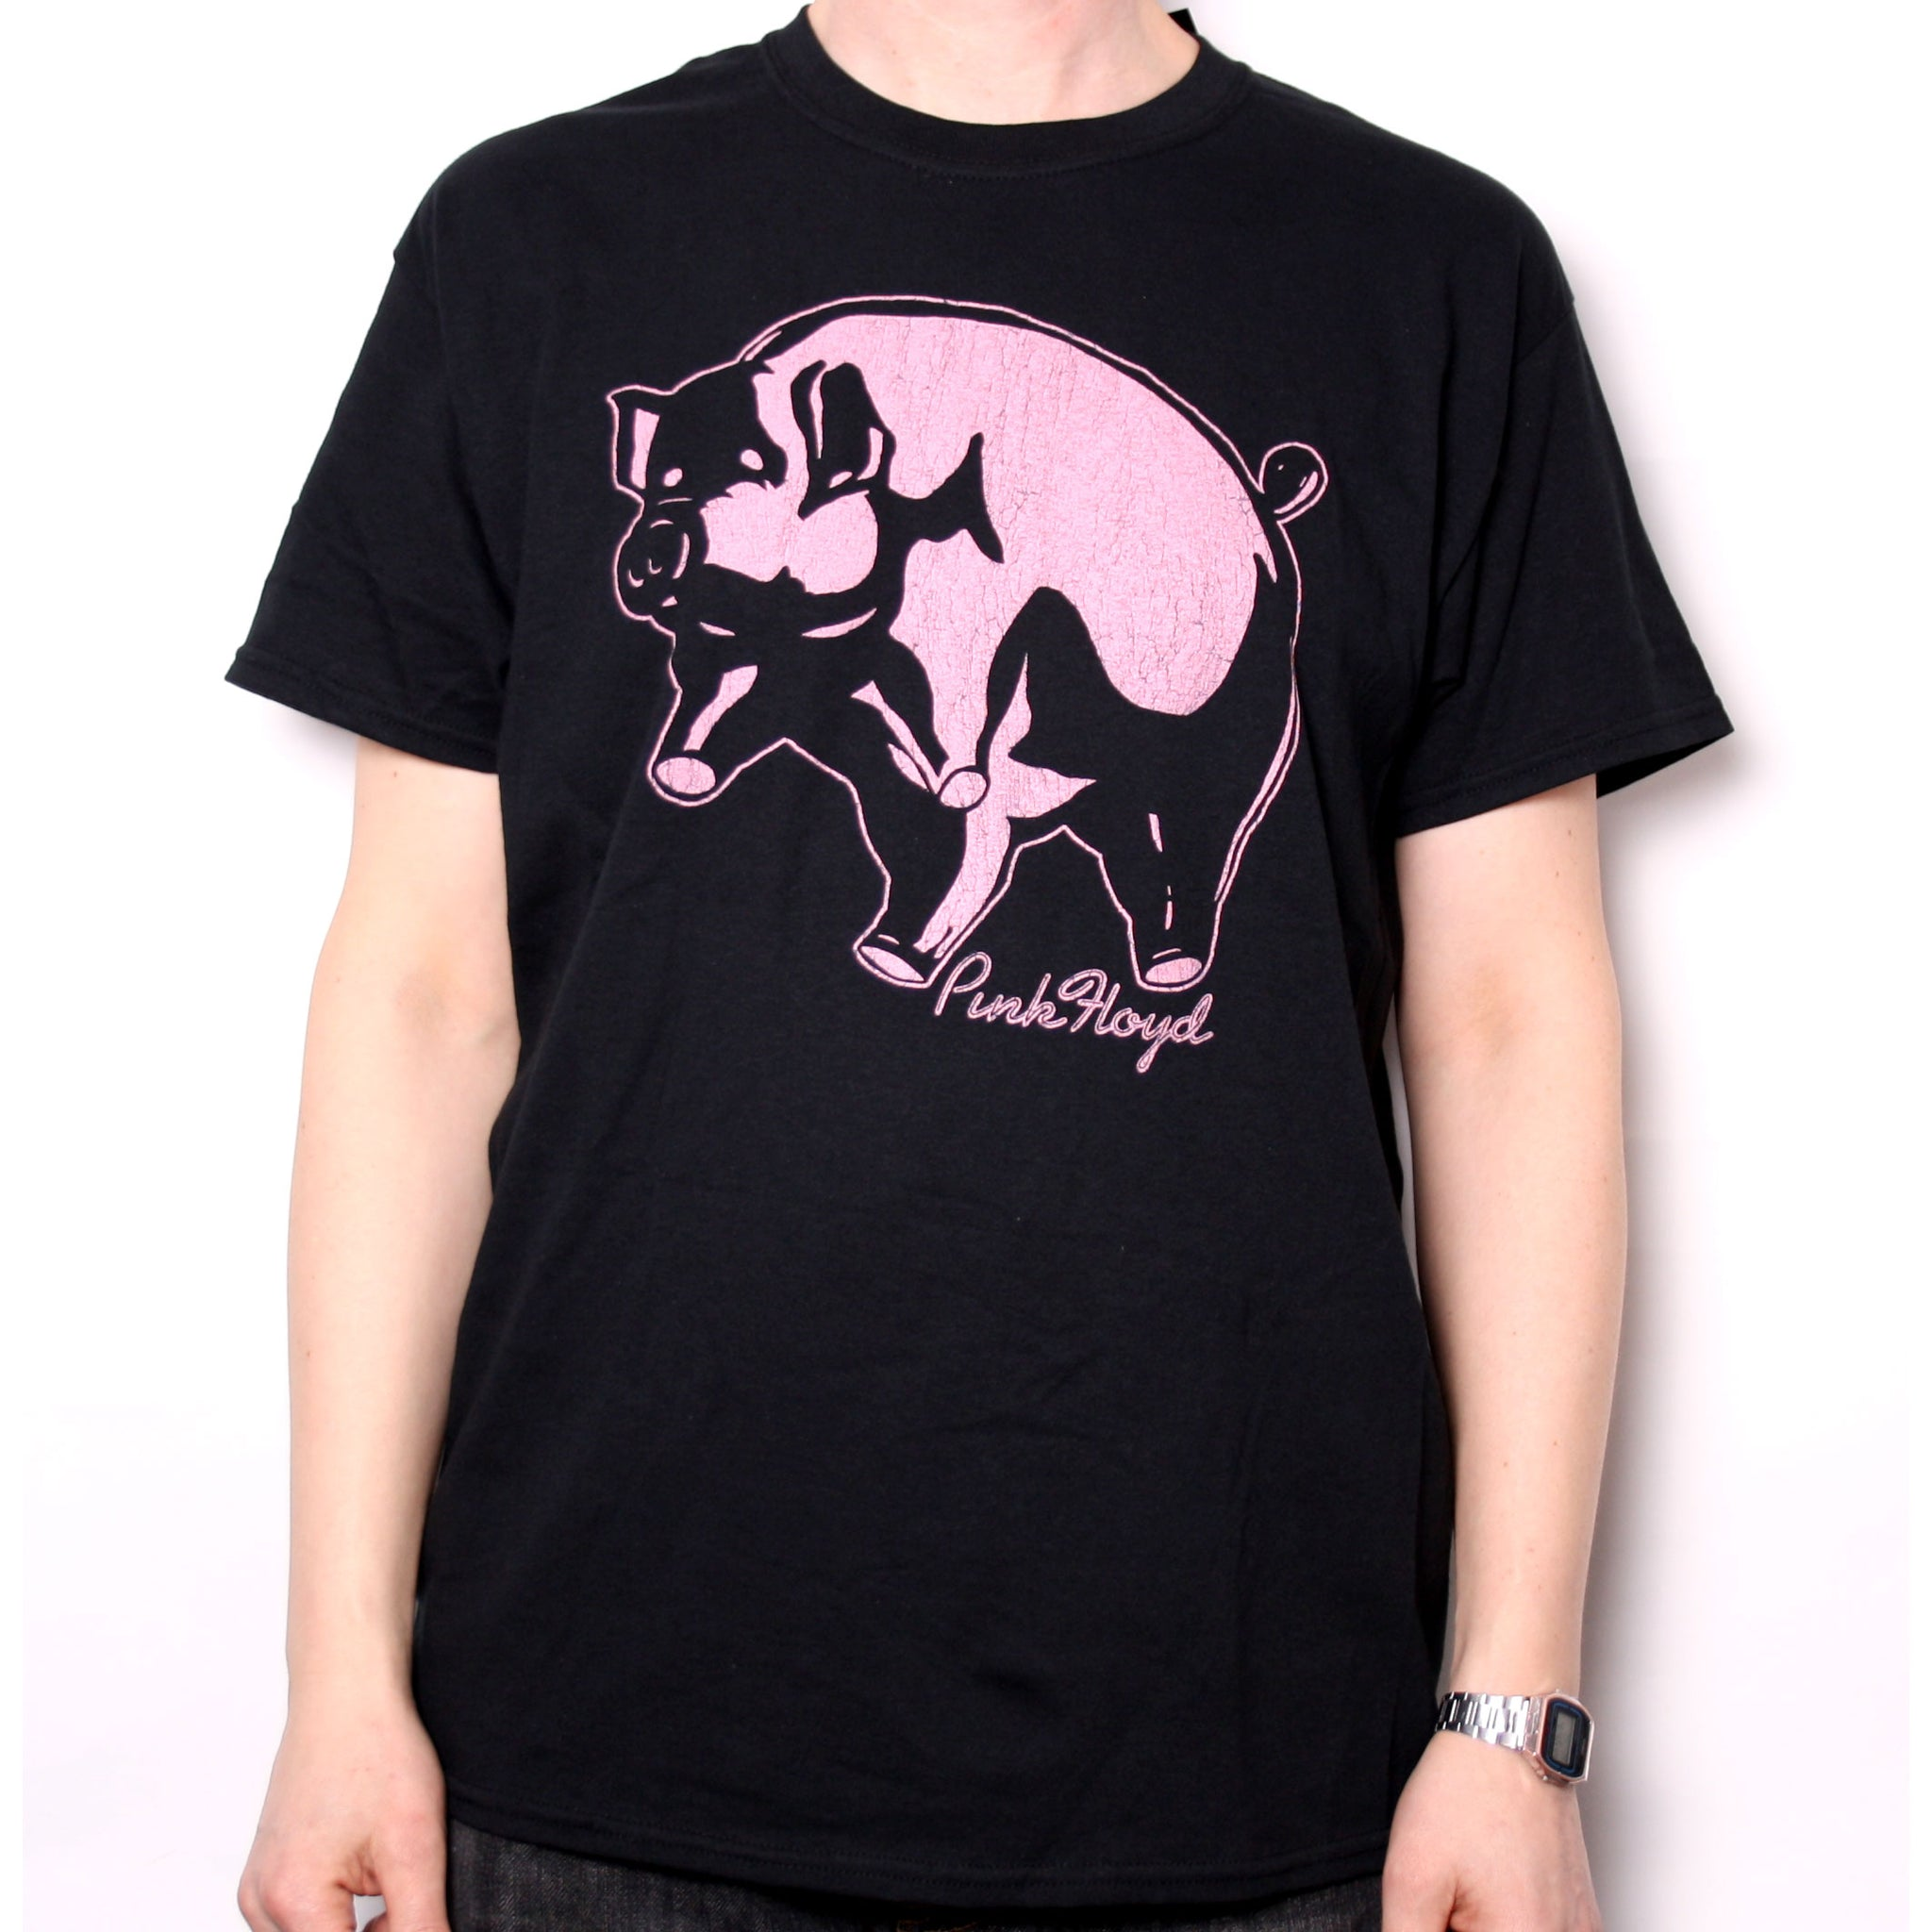 PINK FLOYD ANIMALS Album Cover Vintage Style Adult Long Sleeve T-Shirt S-3XL